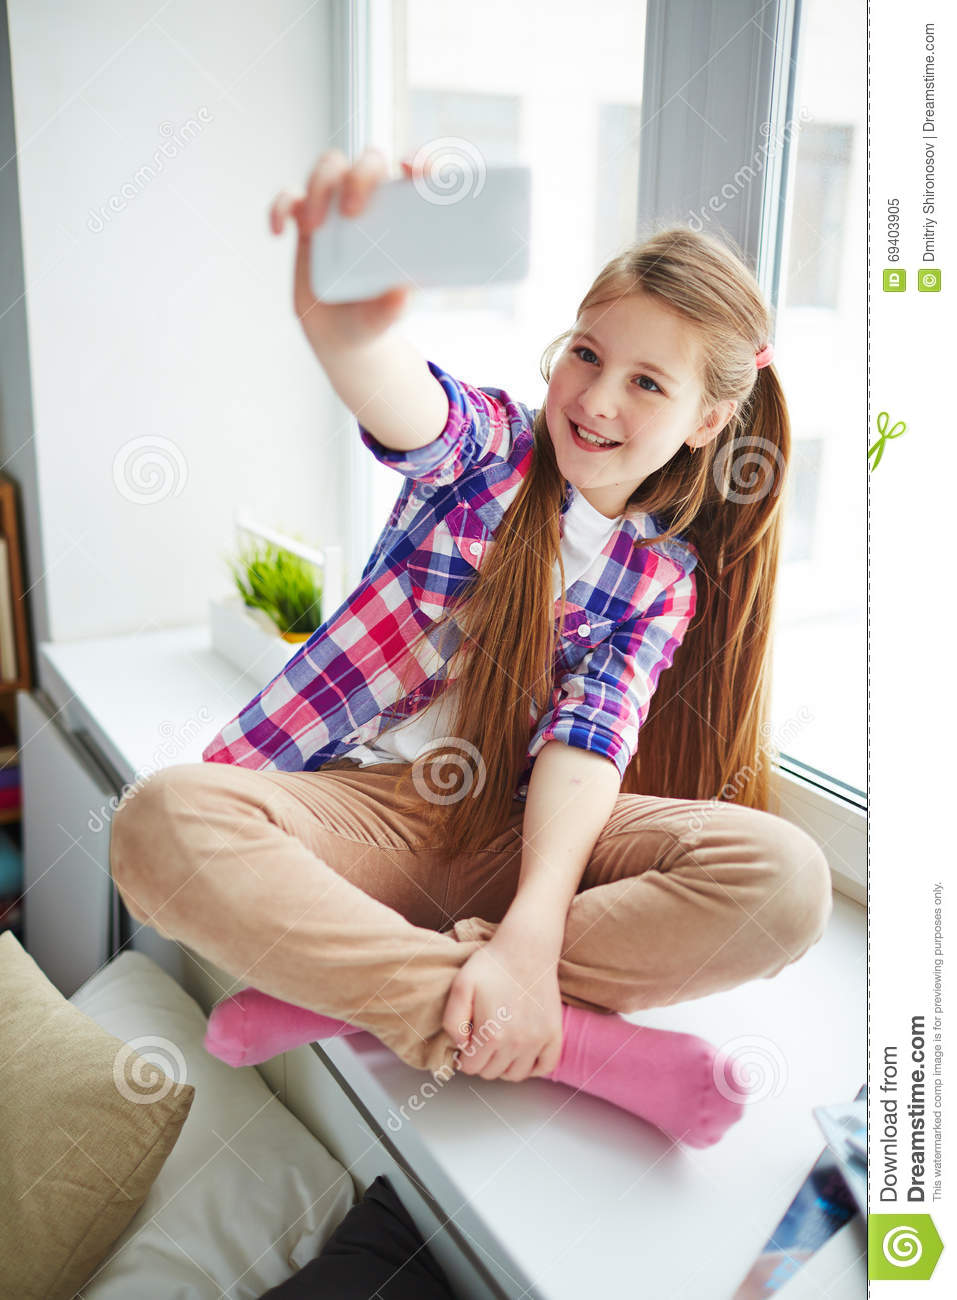 Selfie at home stock image. Image of home, smartphone